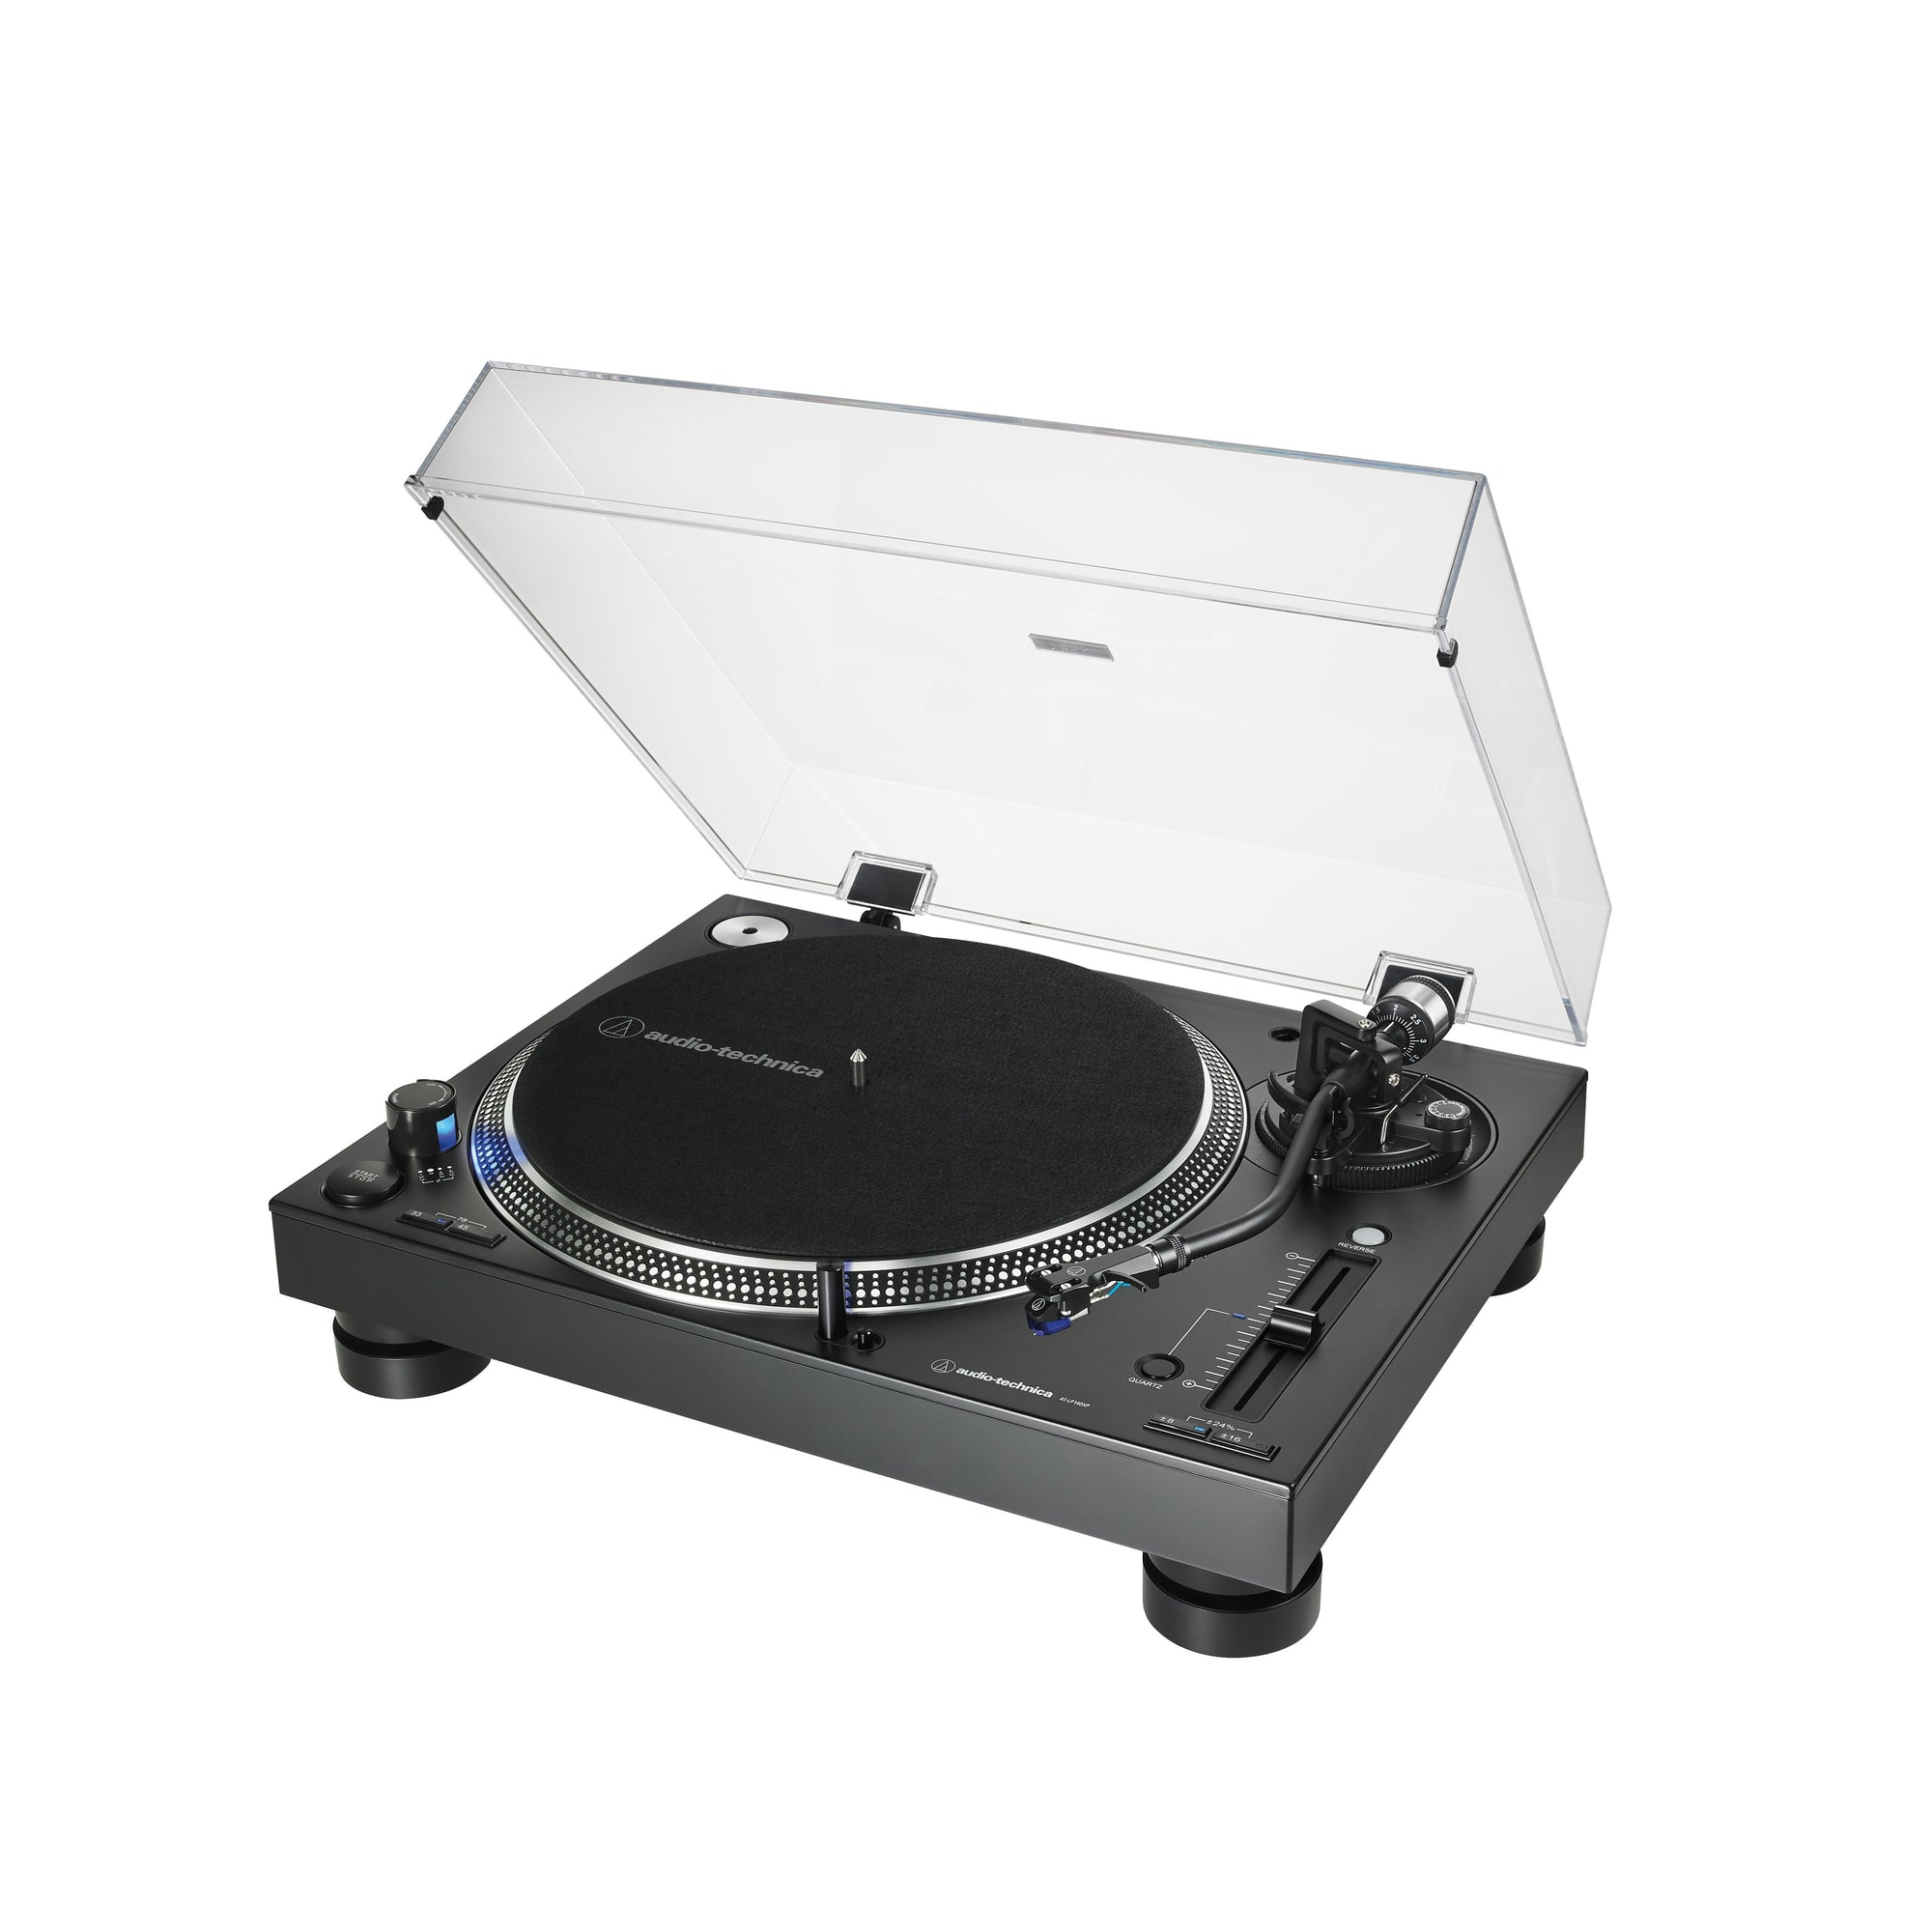 Audio Technica - AT-LP140XP - Direct Drive Turntable Australia